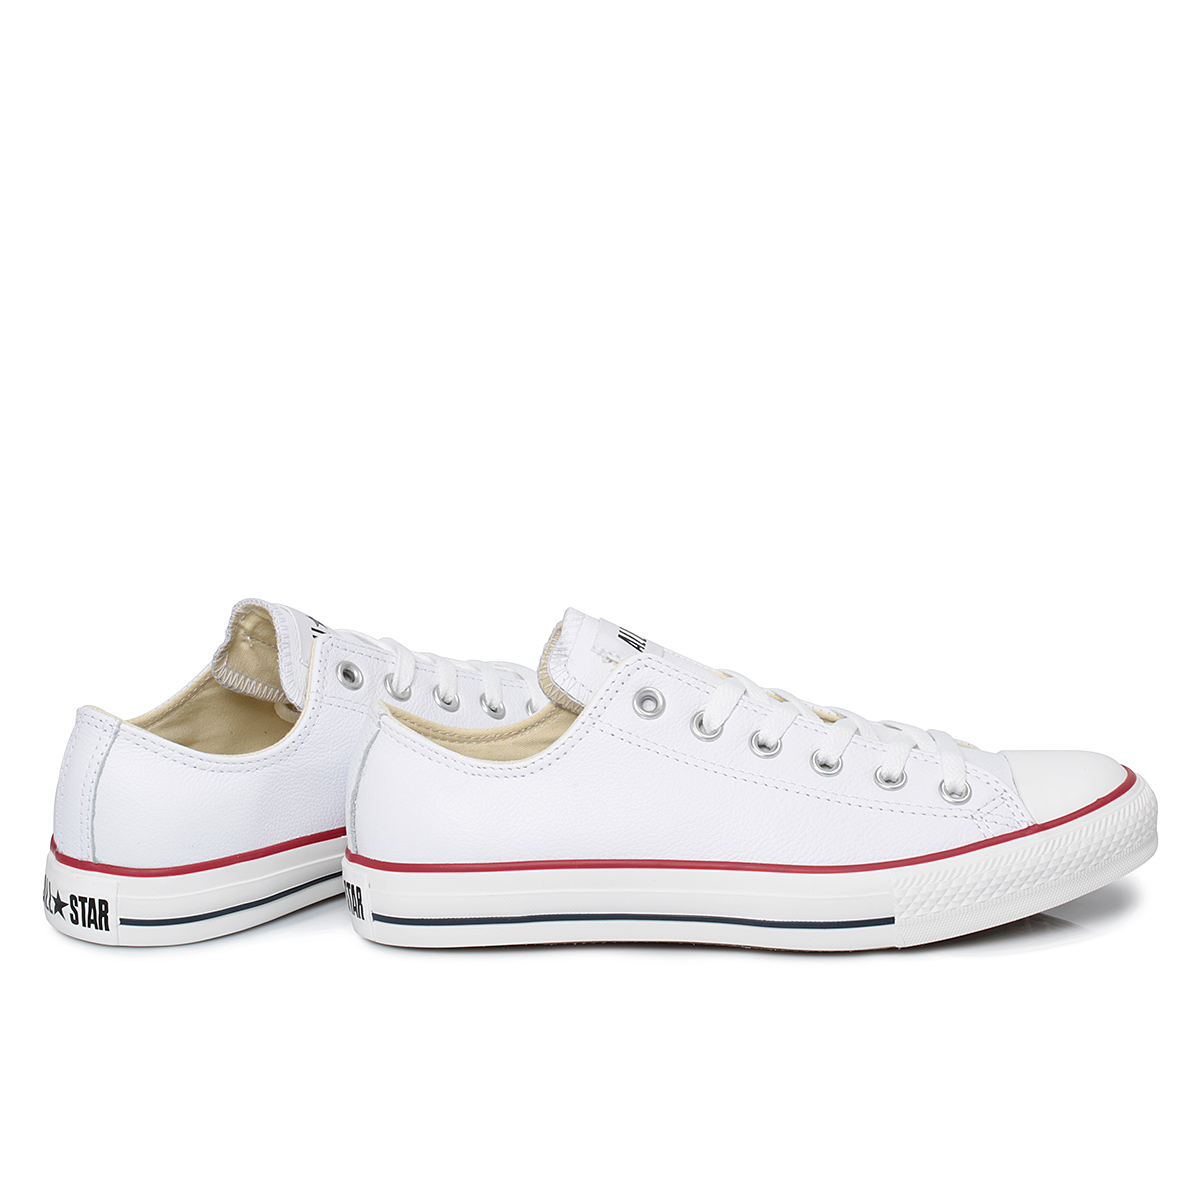 Converse White LT CT Leather Trainers Unisex Size 3-11 | eBay